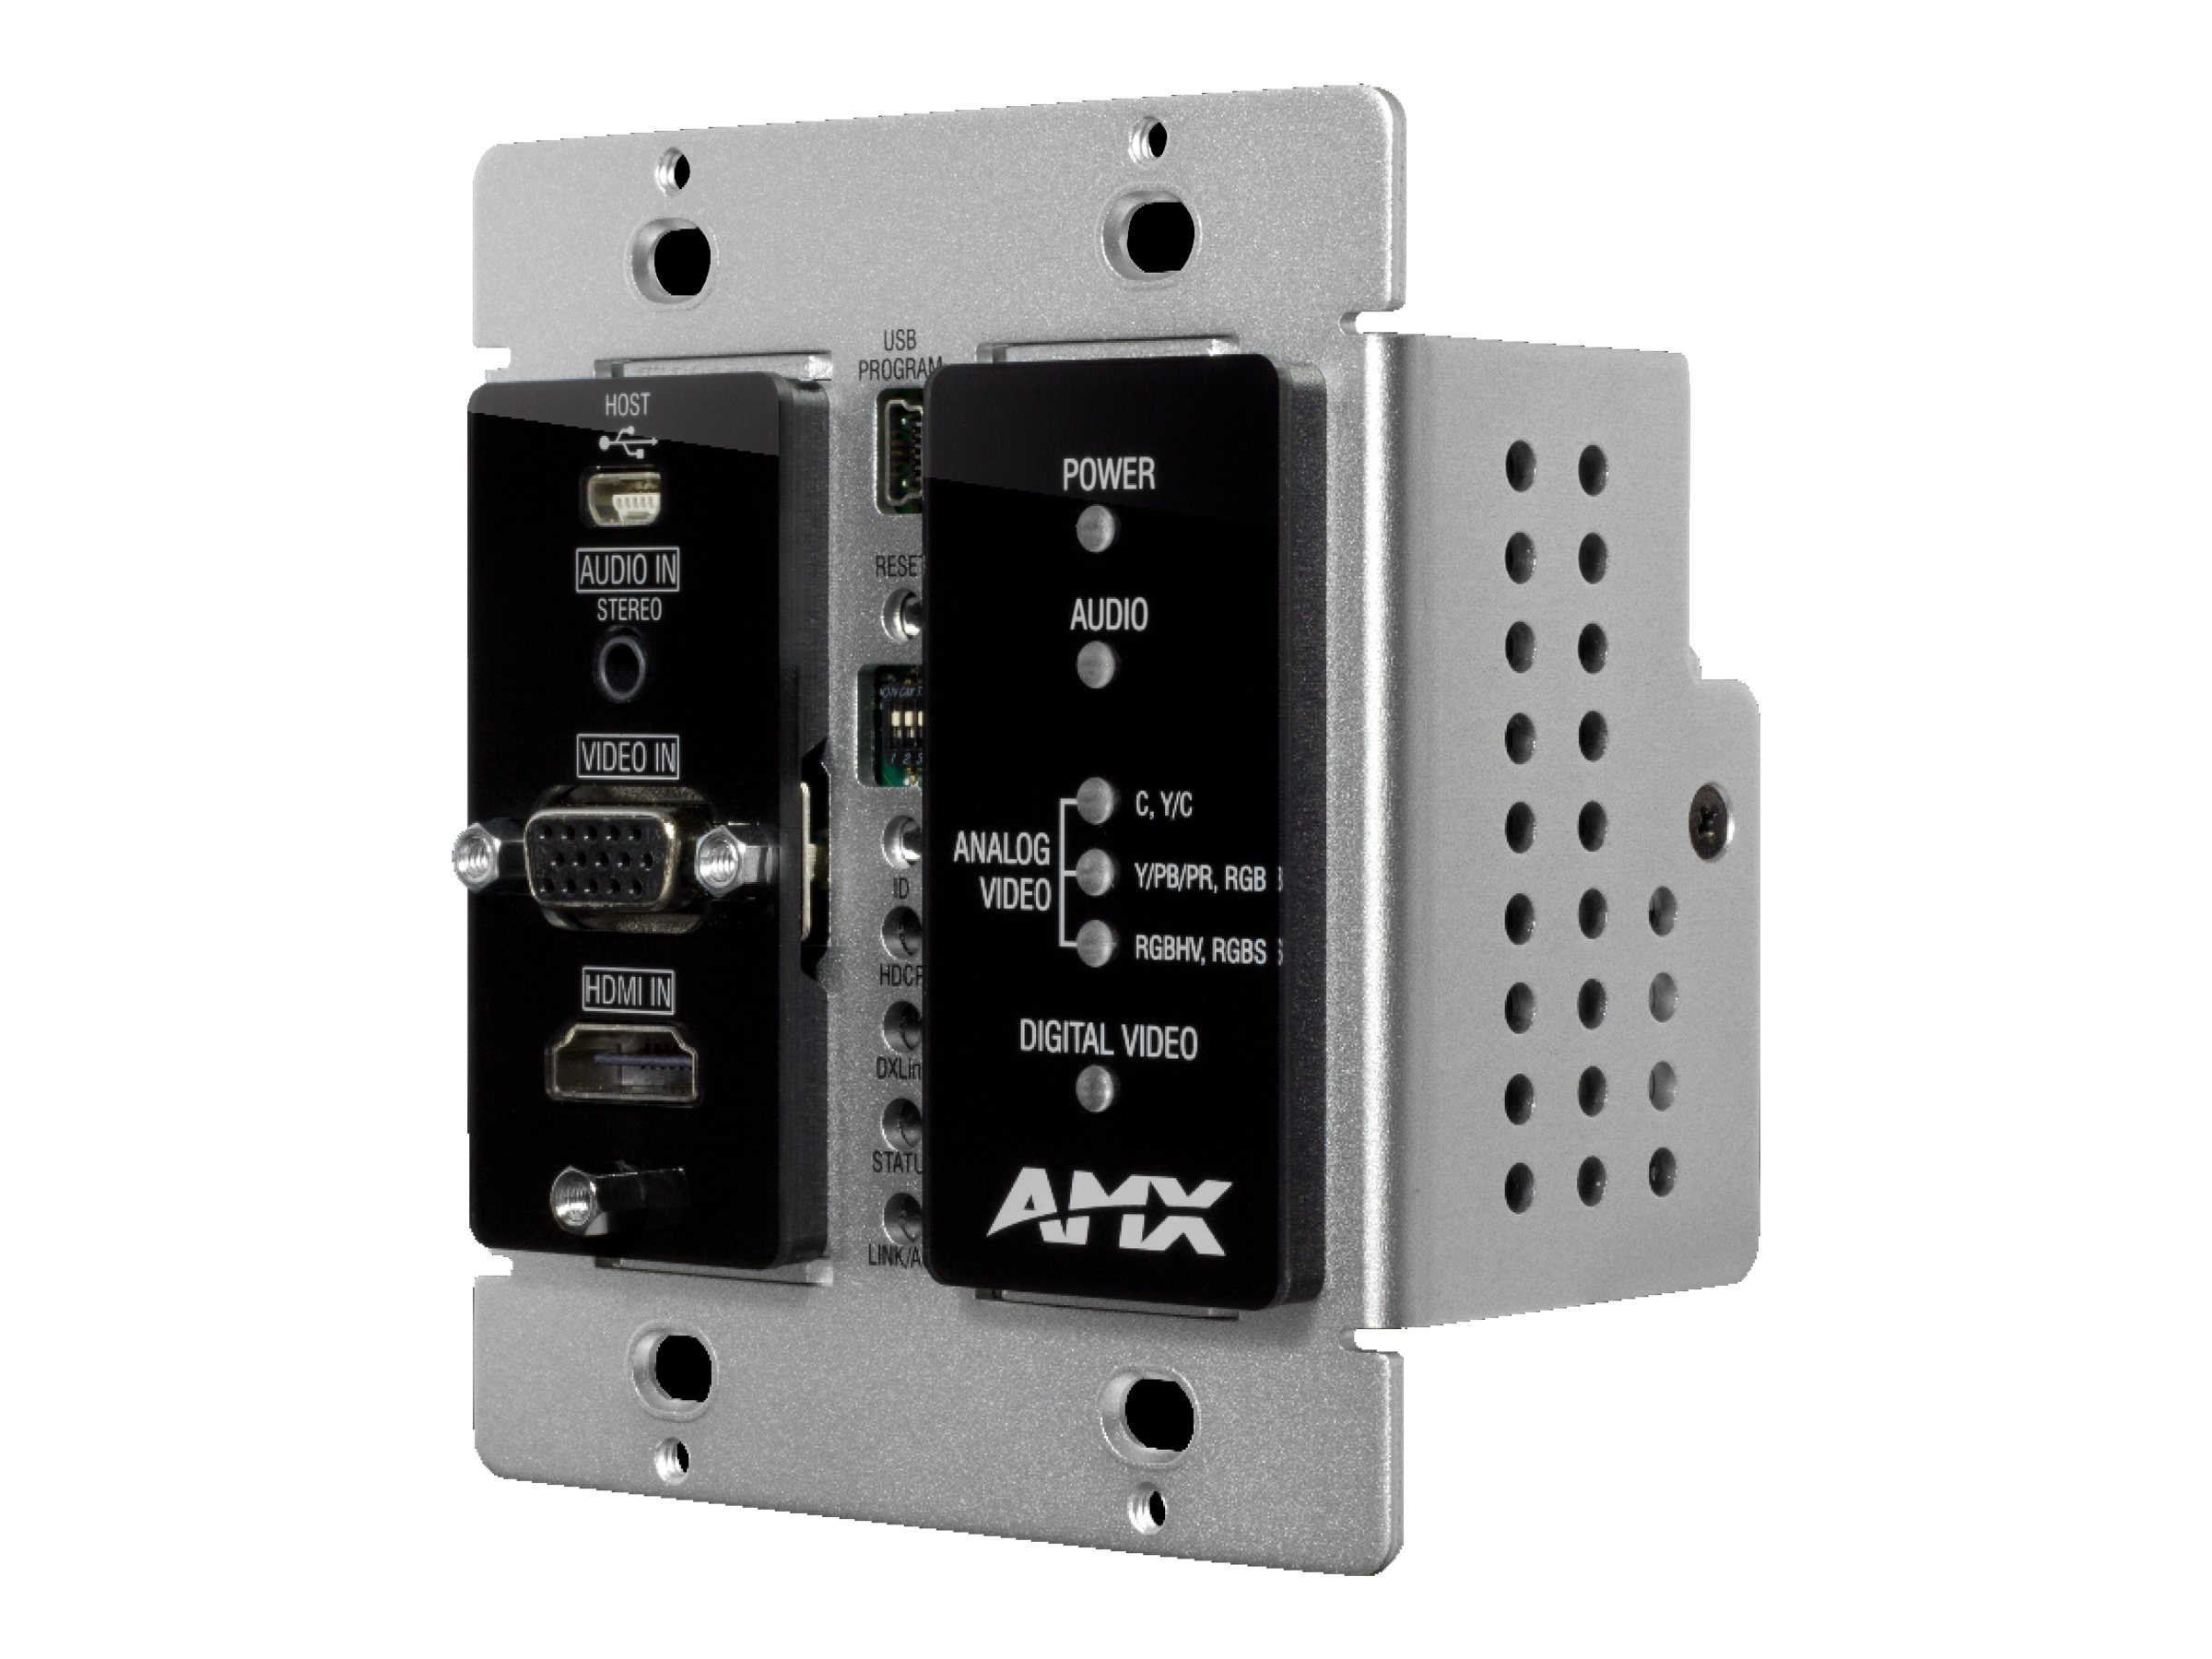 AMX Wallplate Transmitter, Black, FG1010-325-BL, 17812419, Premise Wiring Equipment